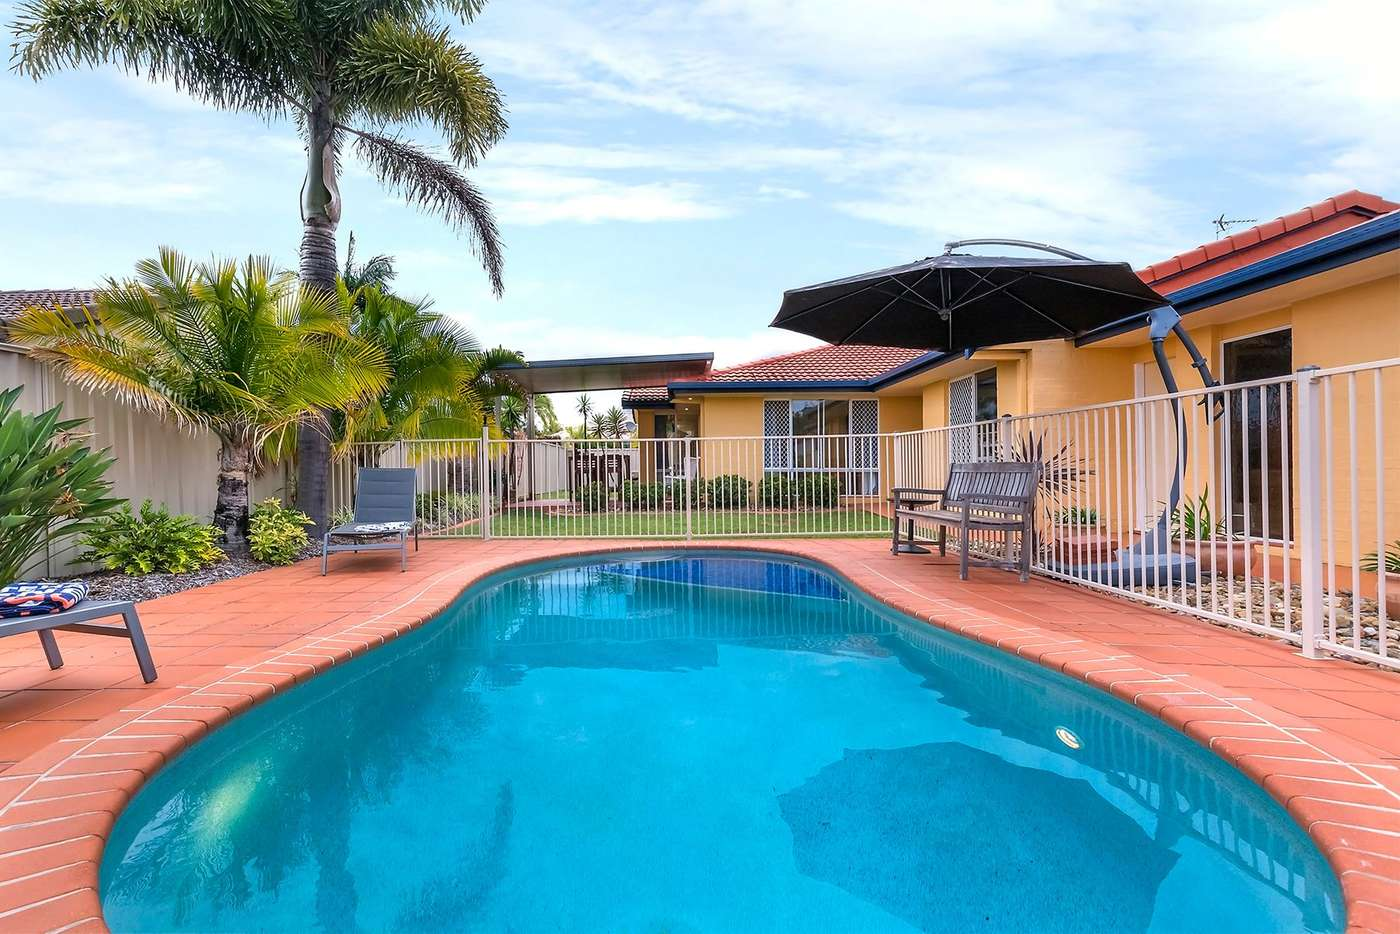 Main view of Homely house listing, 30 Coronet Crescent, Burleigh Waters QLD 4220